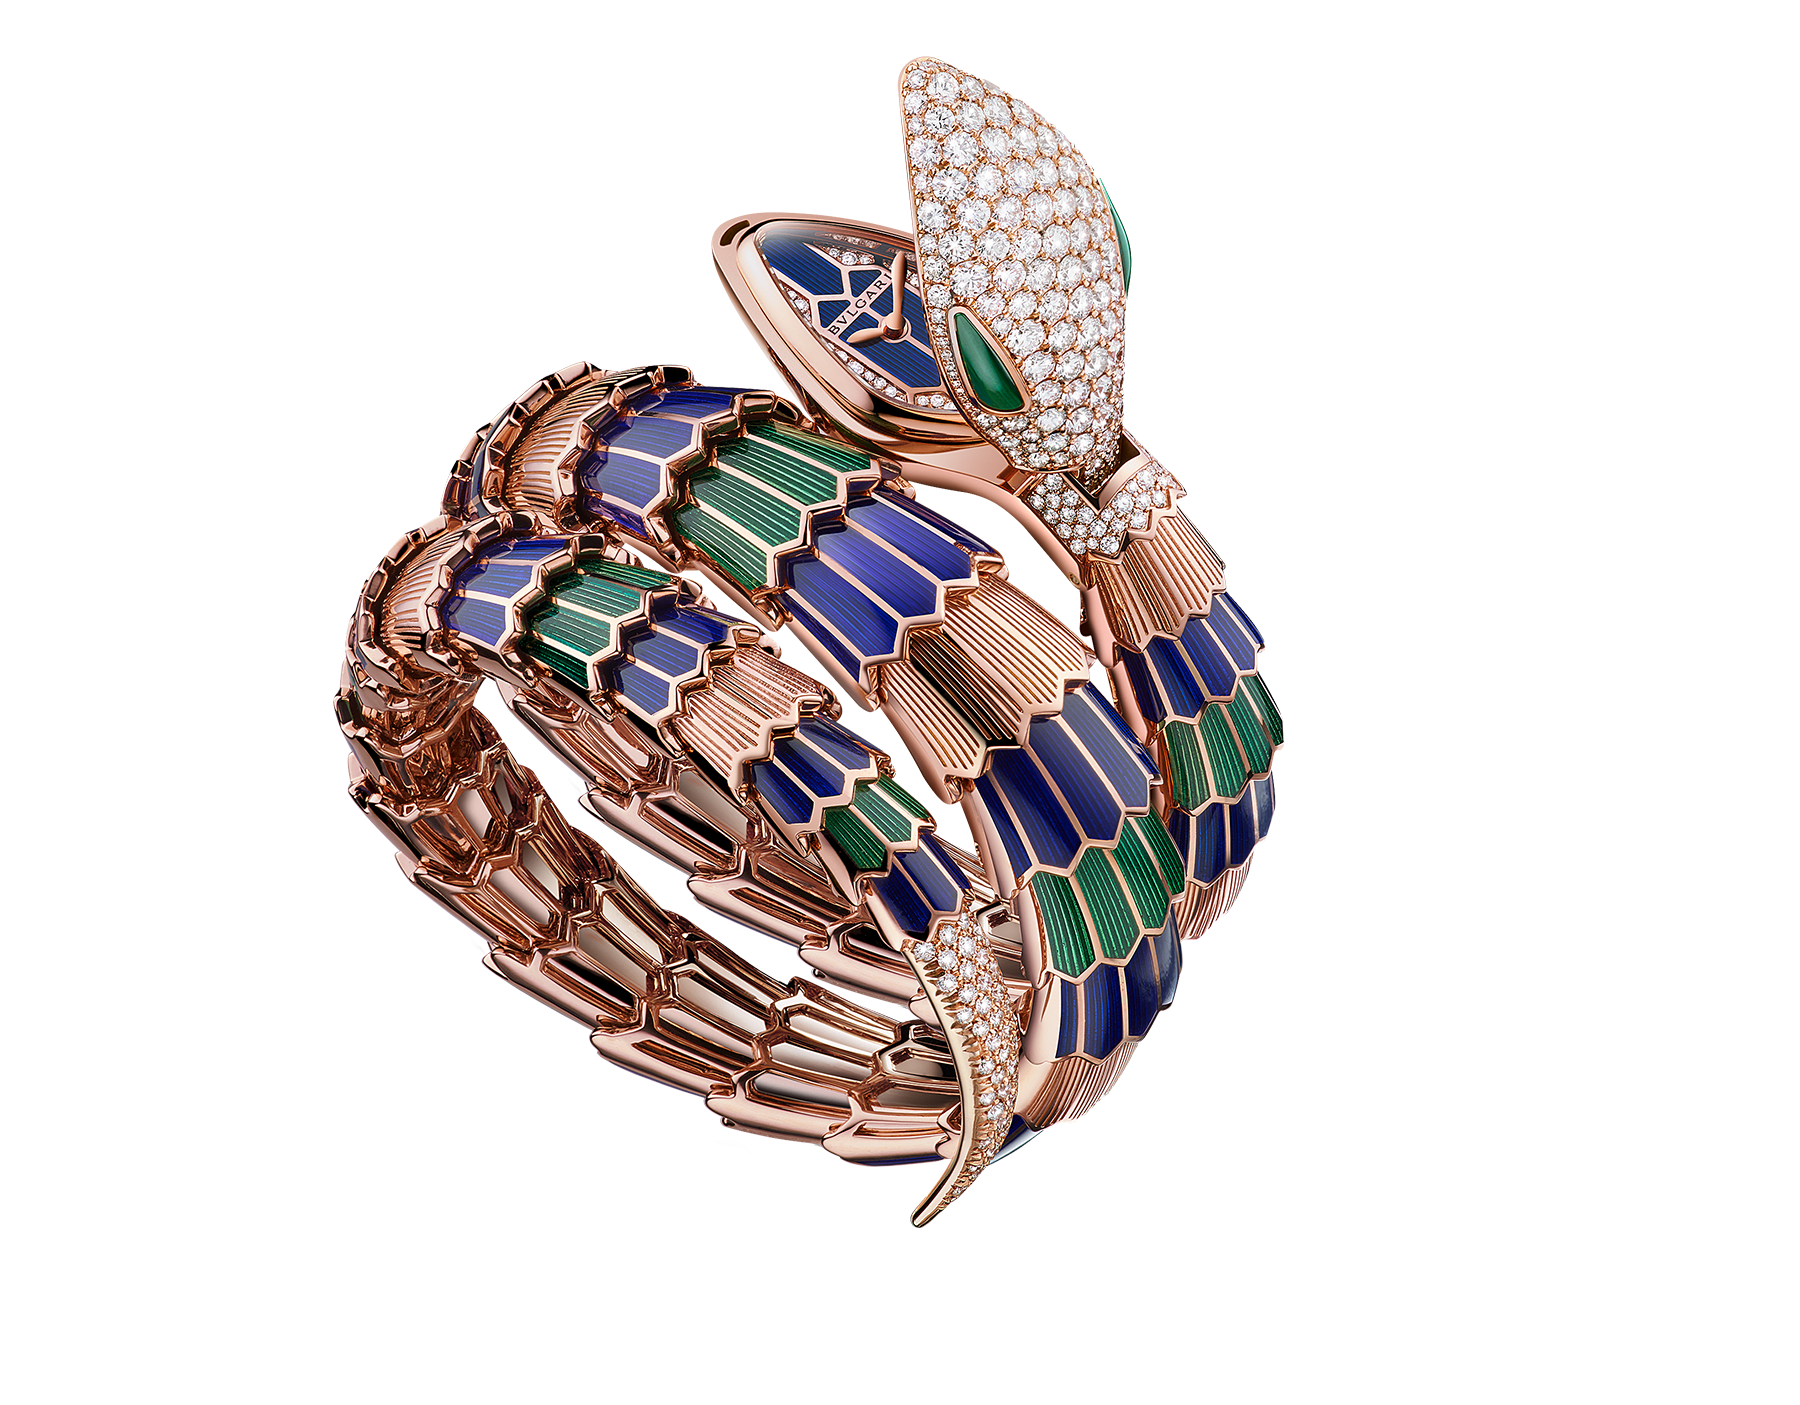 Serpenti Secret Watch with 18 kt rose gold head set with pavé diamonds and malachite eyes, 18 kt rose gold case, 18 kt rose gold dial set with brilliant cut diamonds, 18 kt rose gold double spiral bracelet coated with blue and green lacquer and set with pavé diamonds. 102446 image 1